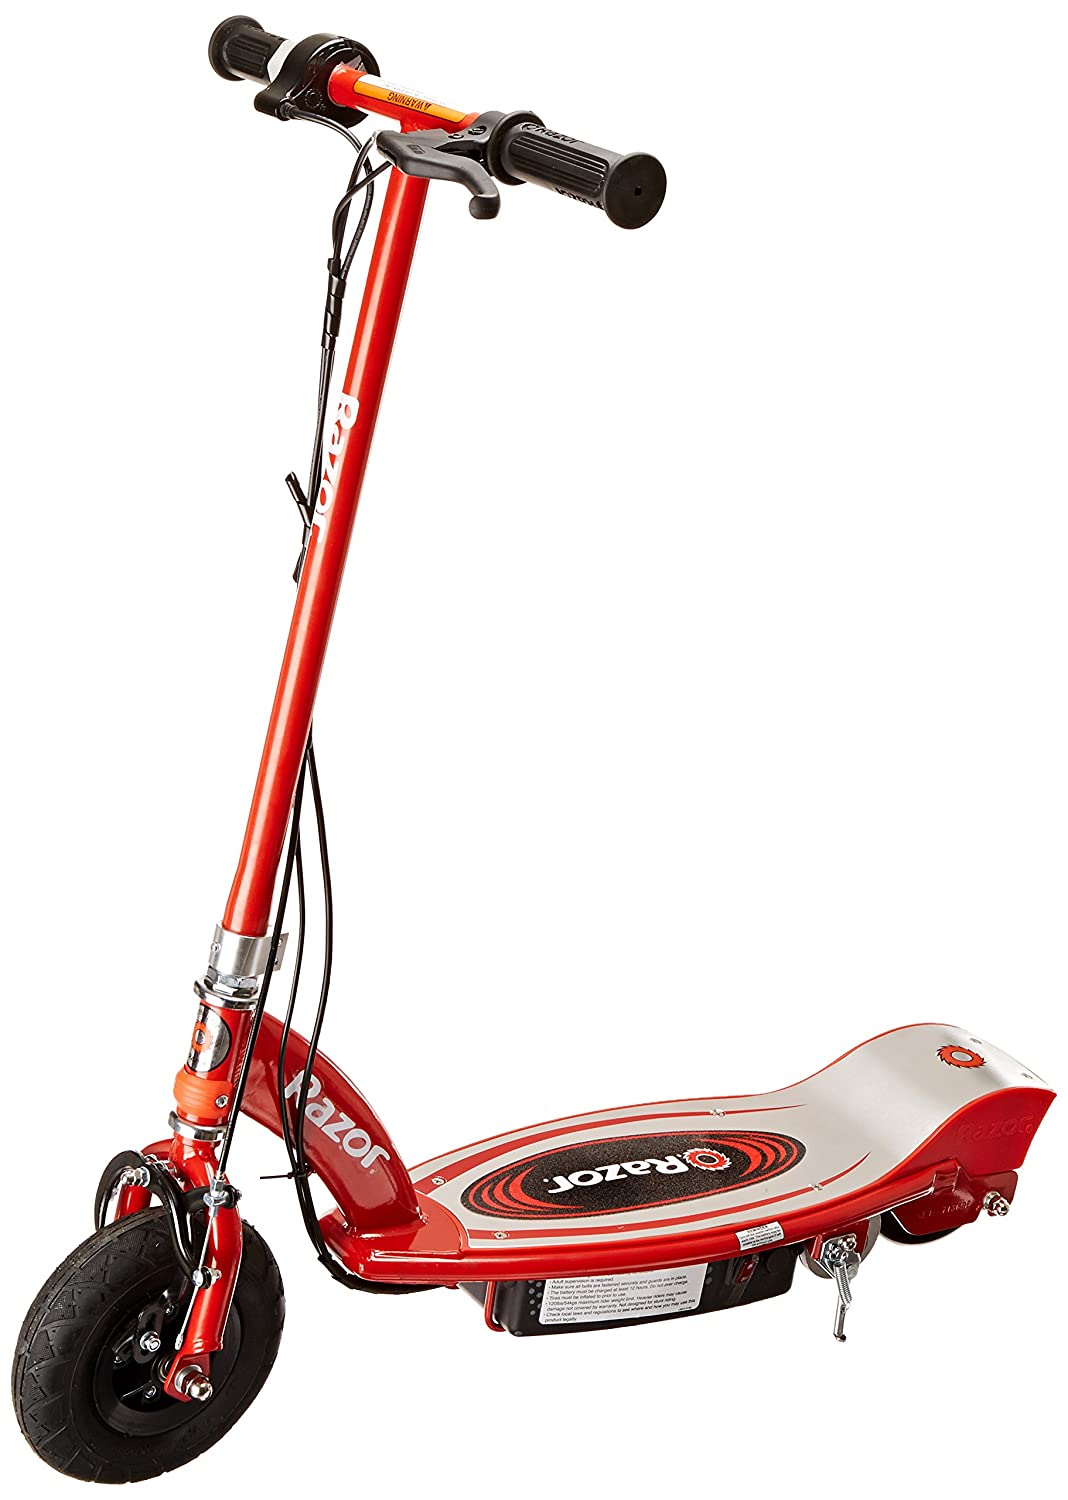 Motorized Toys For Boys : Best toys for kids the scooters on